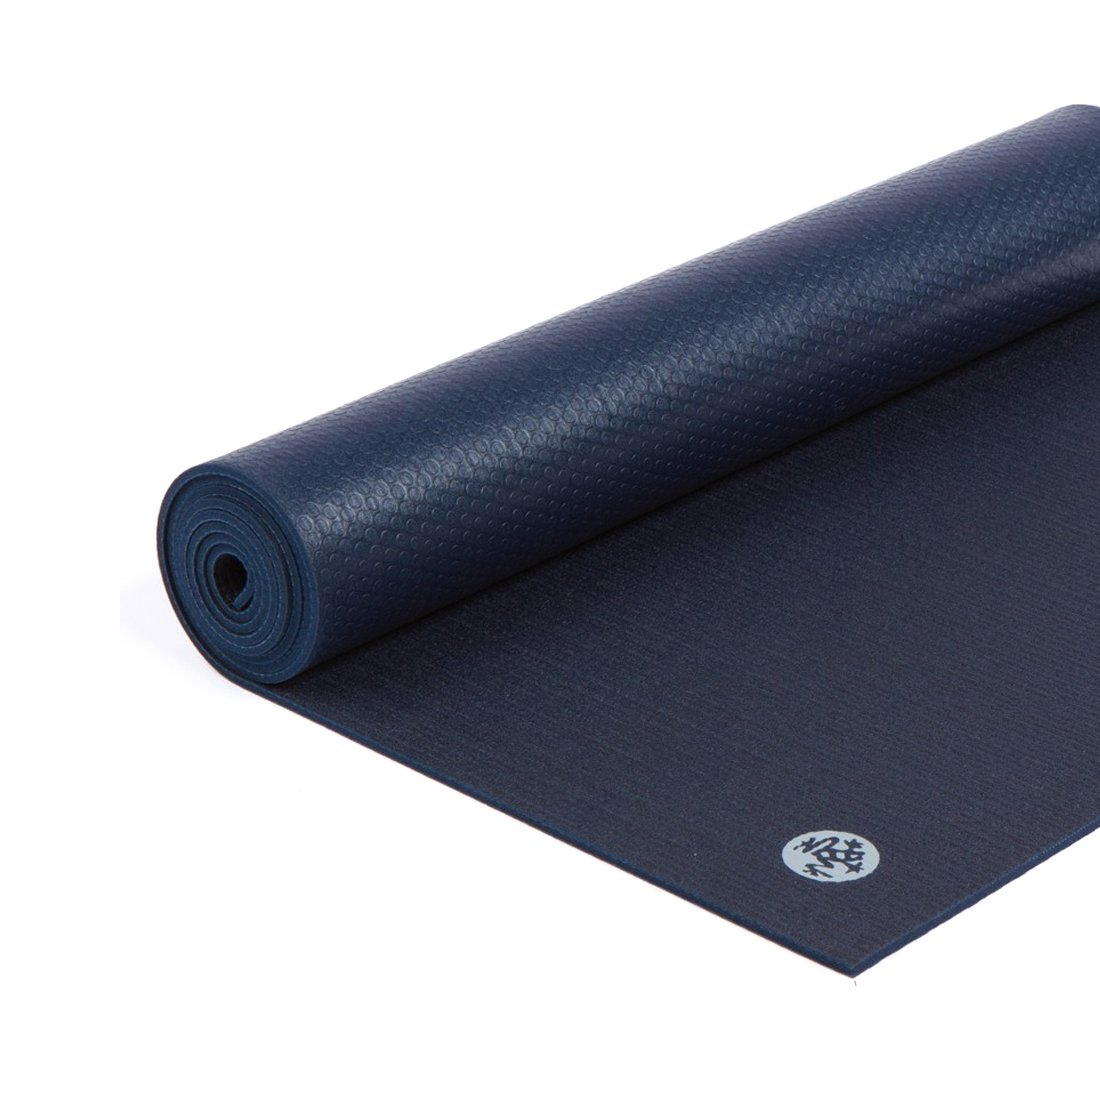 Manduka Unisex PROlite¿ Yoga Mat Midnight Exercise Equipment